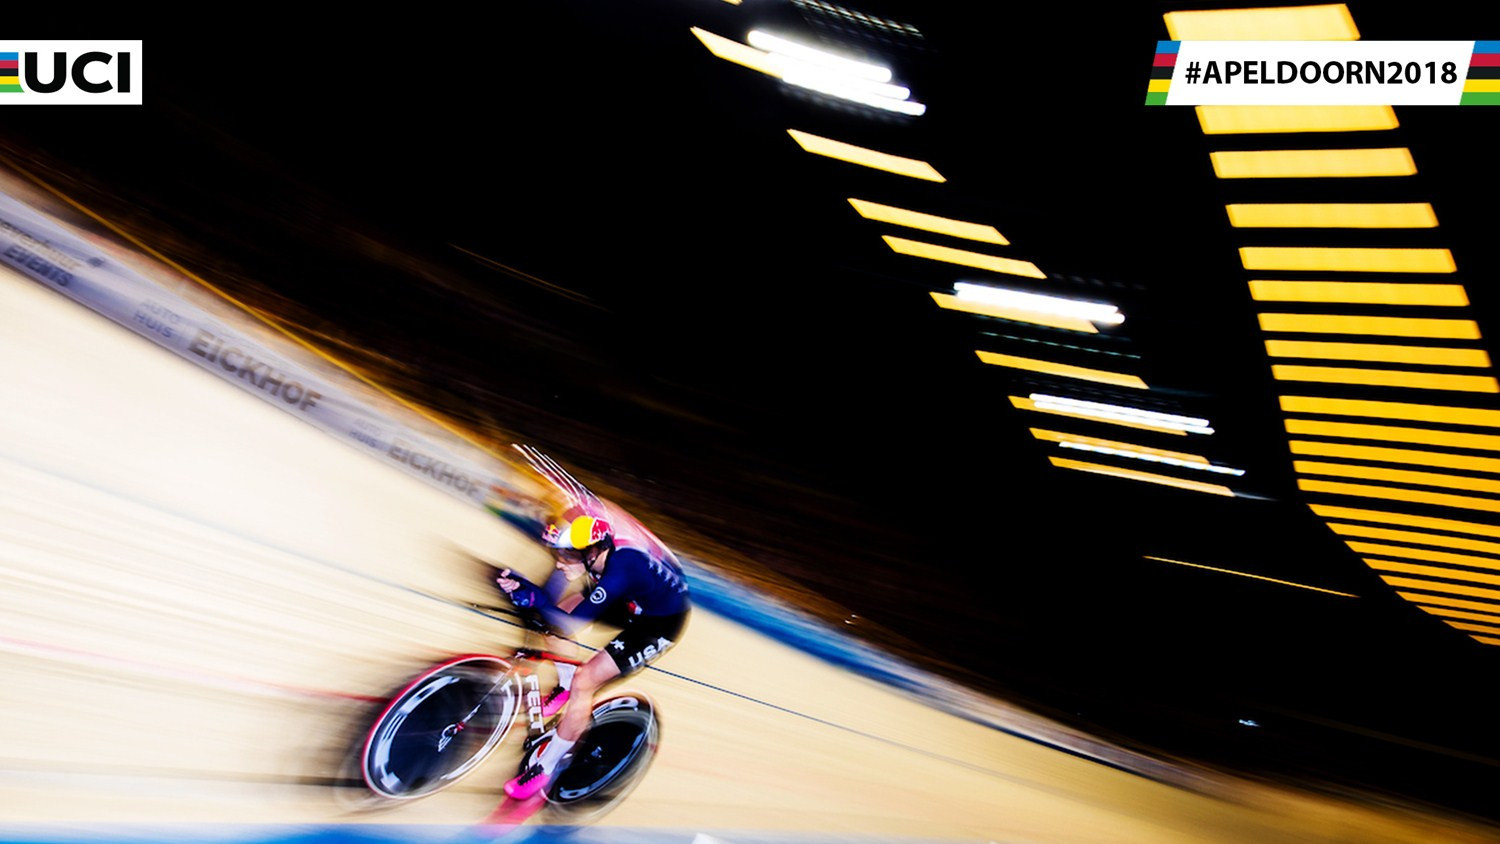 Dygert twice breaks world record at UCI World Track Championships in Apeldoorn